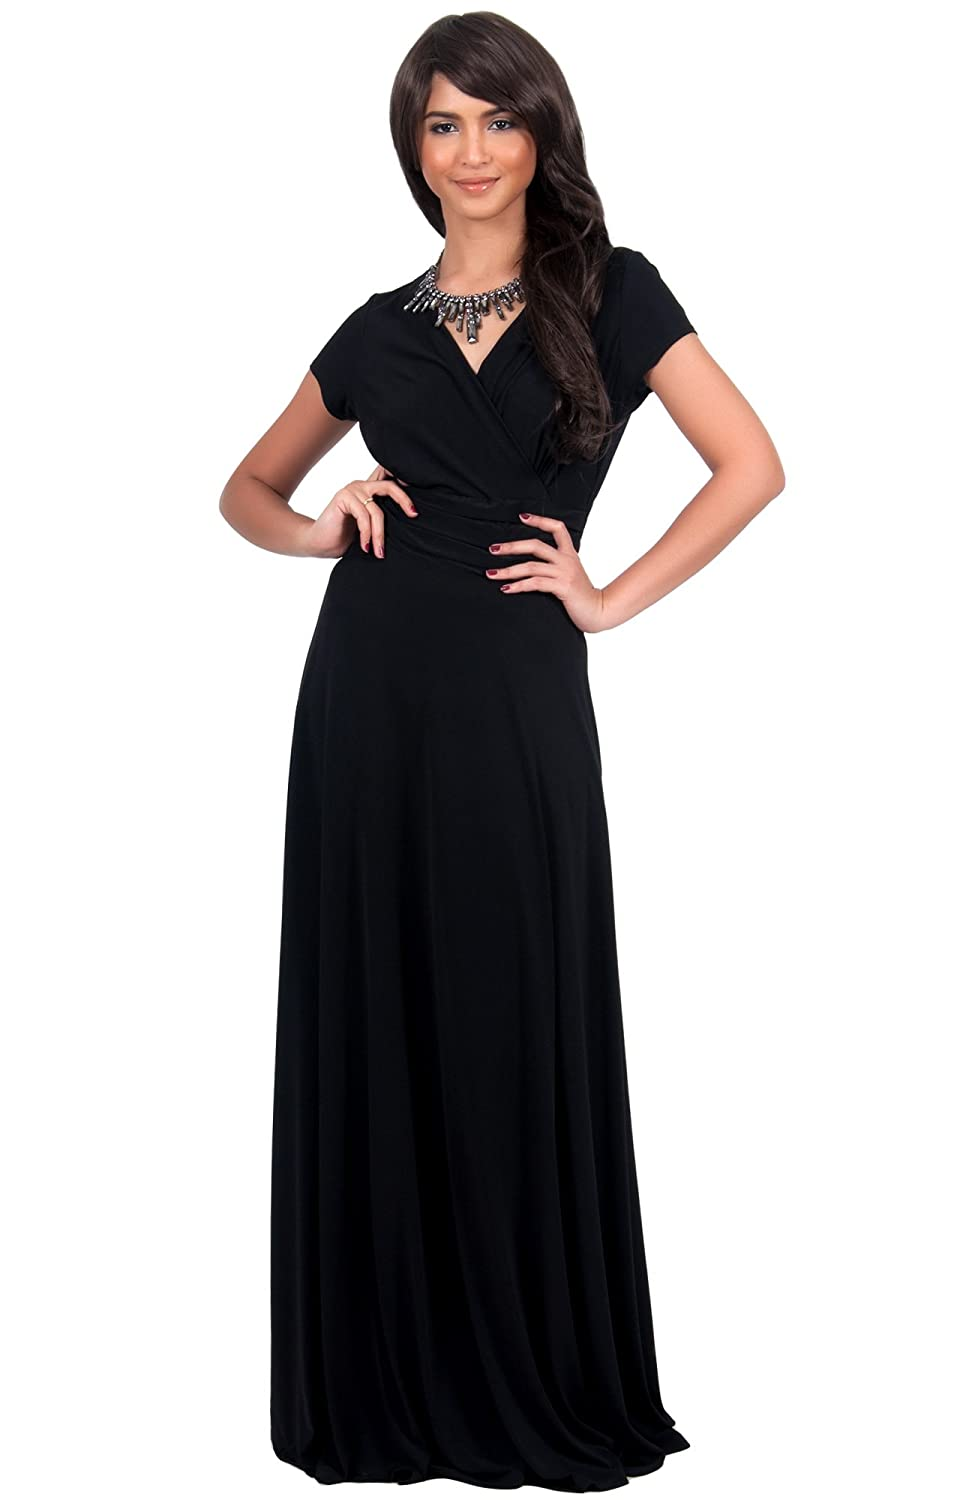 Black dress design - Koh Koh Womens Long Sexy Cap Short Sleeve V Neck Flowy Cocktail Gown Maxi Dress At Amazon Women S Clothing Store